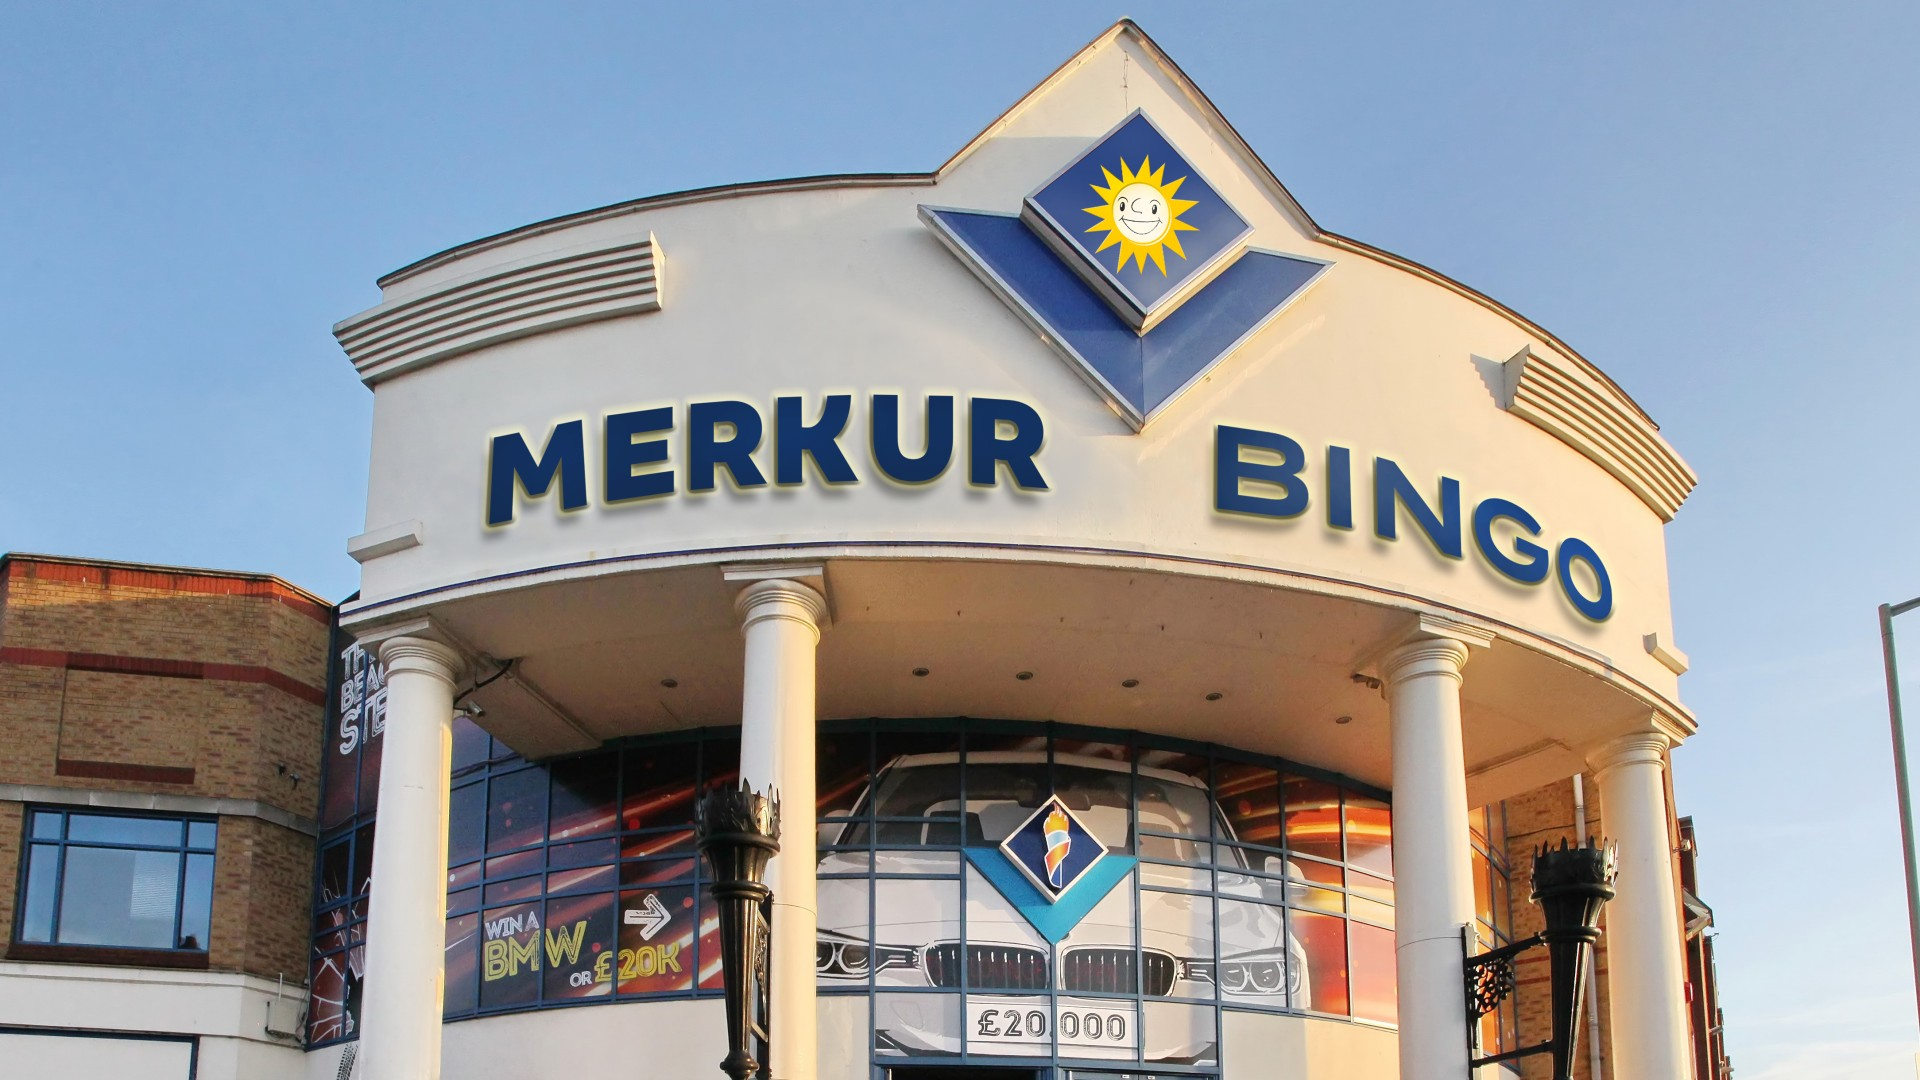 MERKUR Bingo-outside